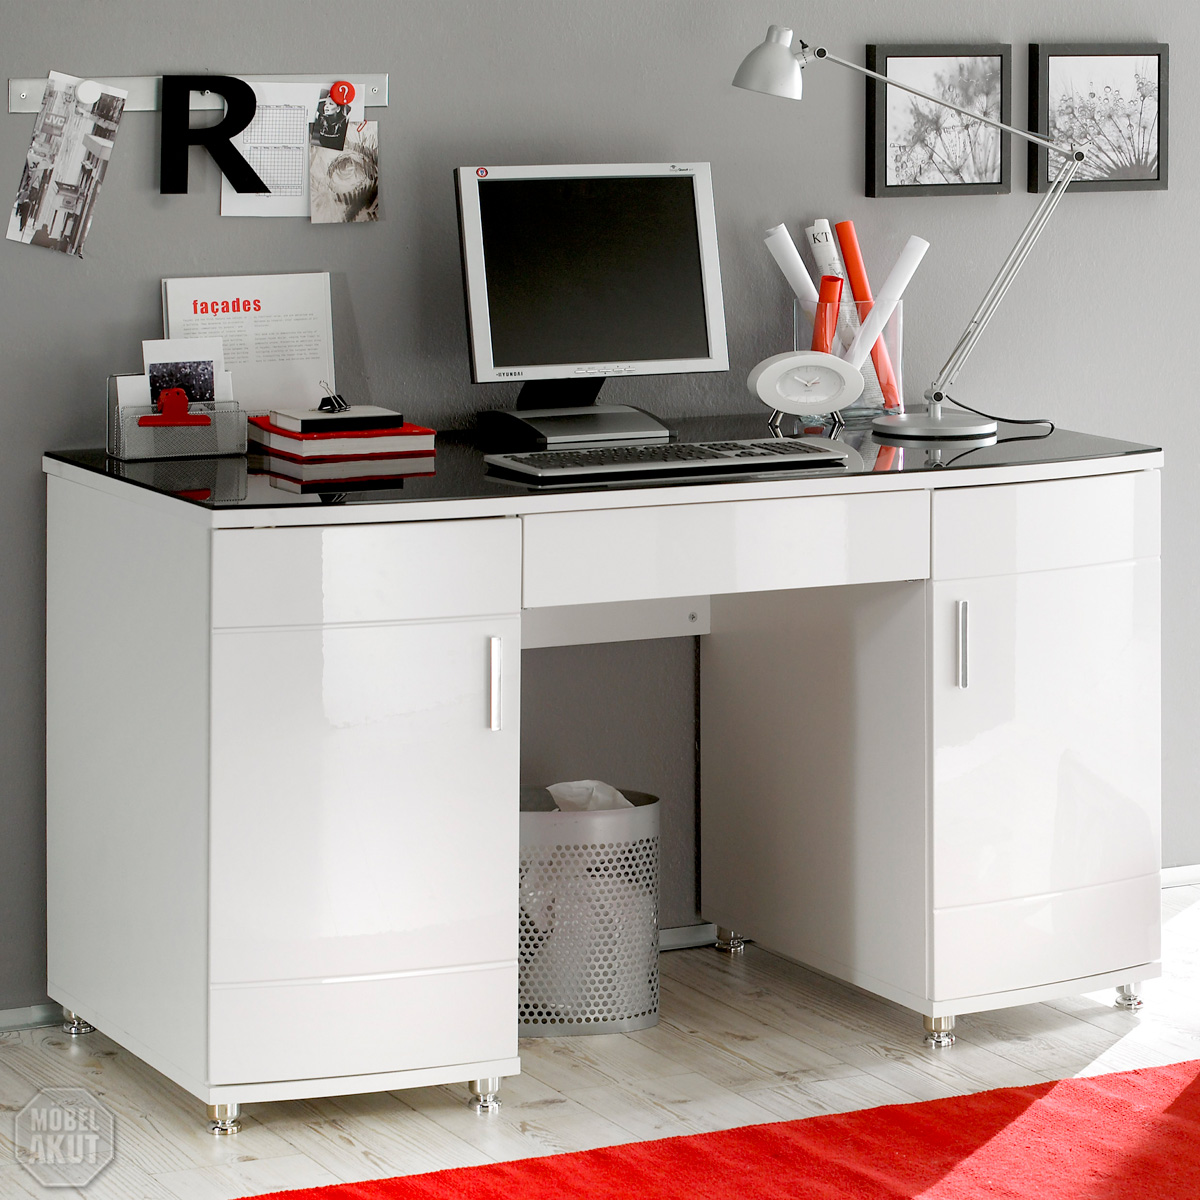 schreibtisch luxus in hochglanz wei mit glasplatte in schwarz ebay. Black Bedroom Furniture Sets. Home Design Ideas